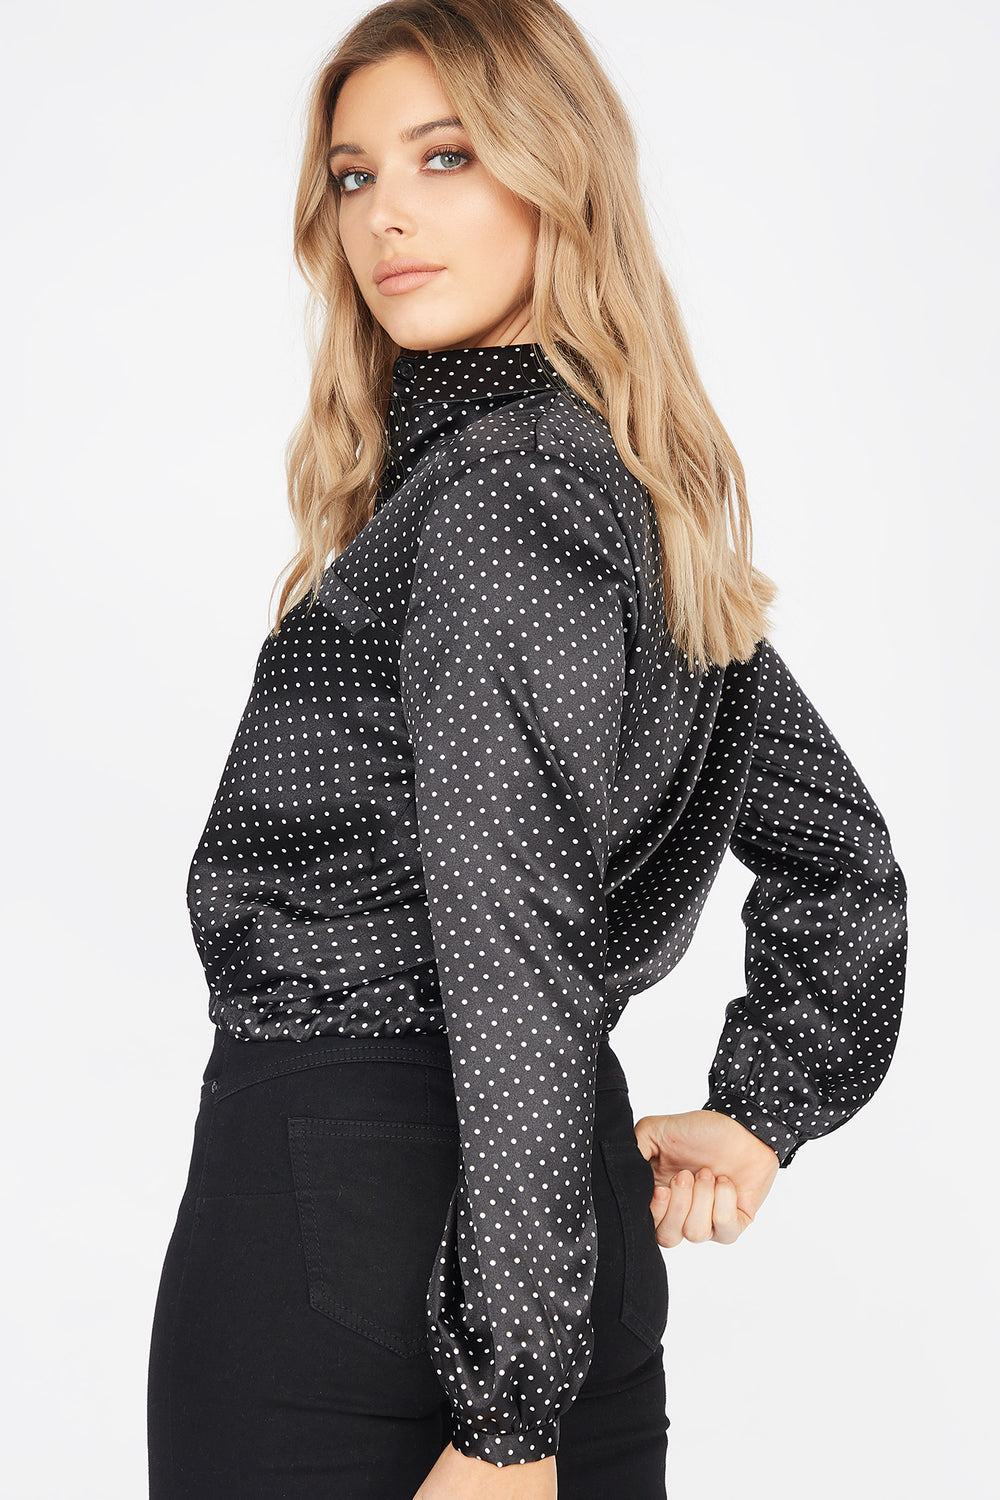 Satin Polka Dot Button-Up Self-Tie Cinched Hem Blouse Solid Black